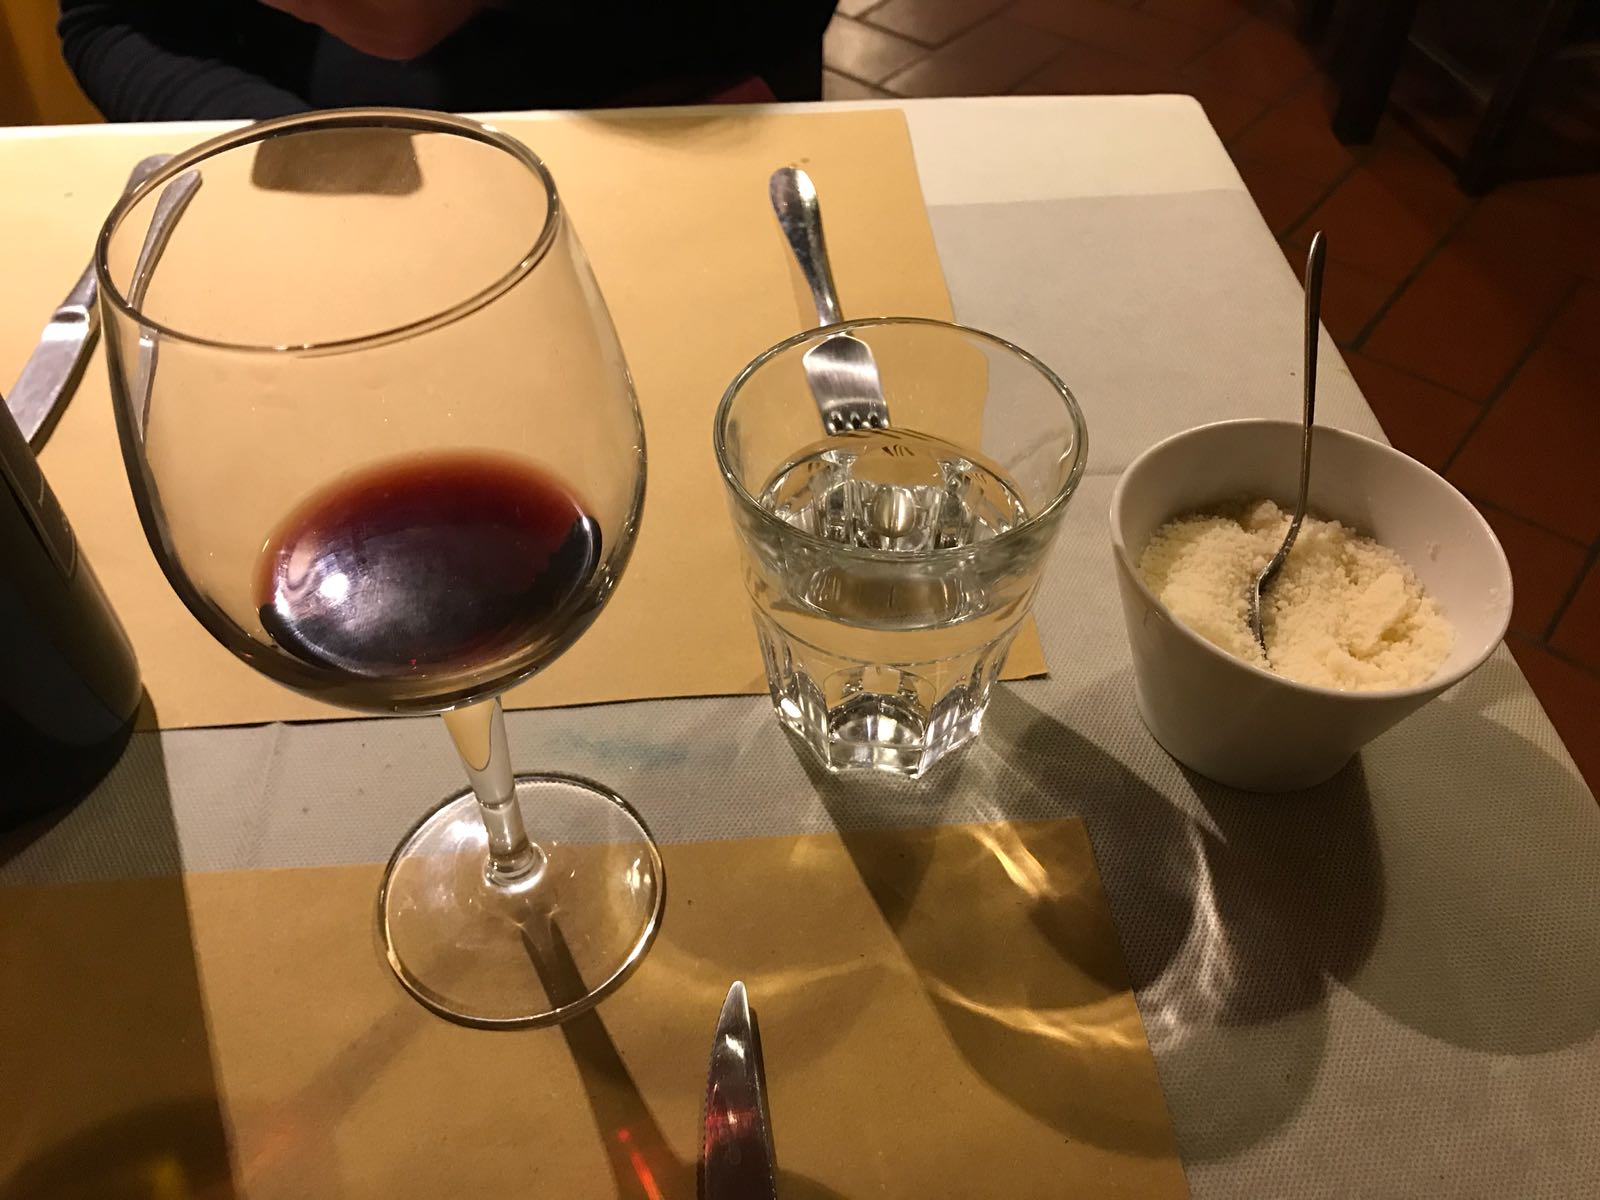 A bowl of parmesan on our dinner table alongside glasses of wine and water